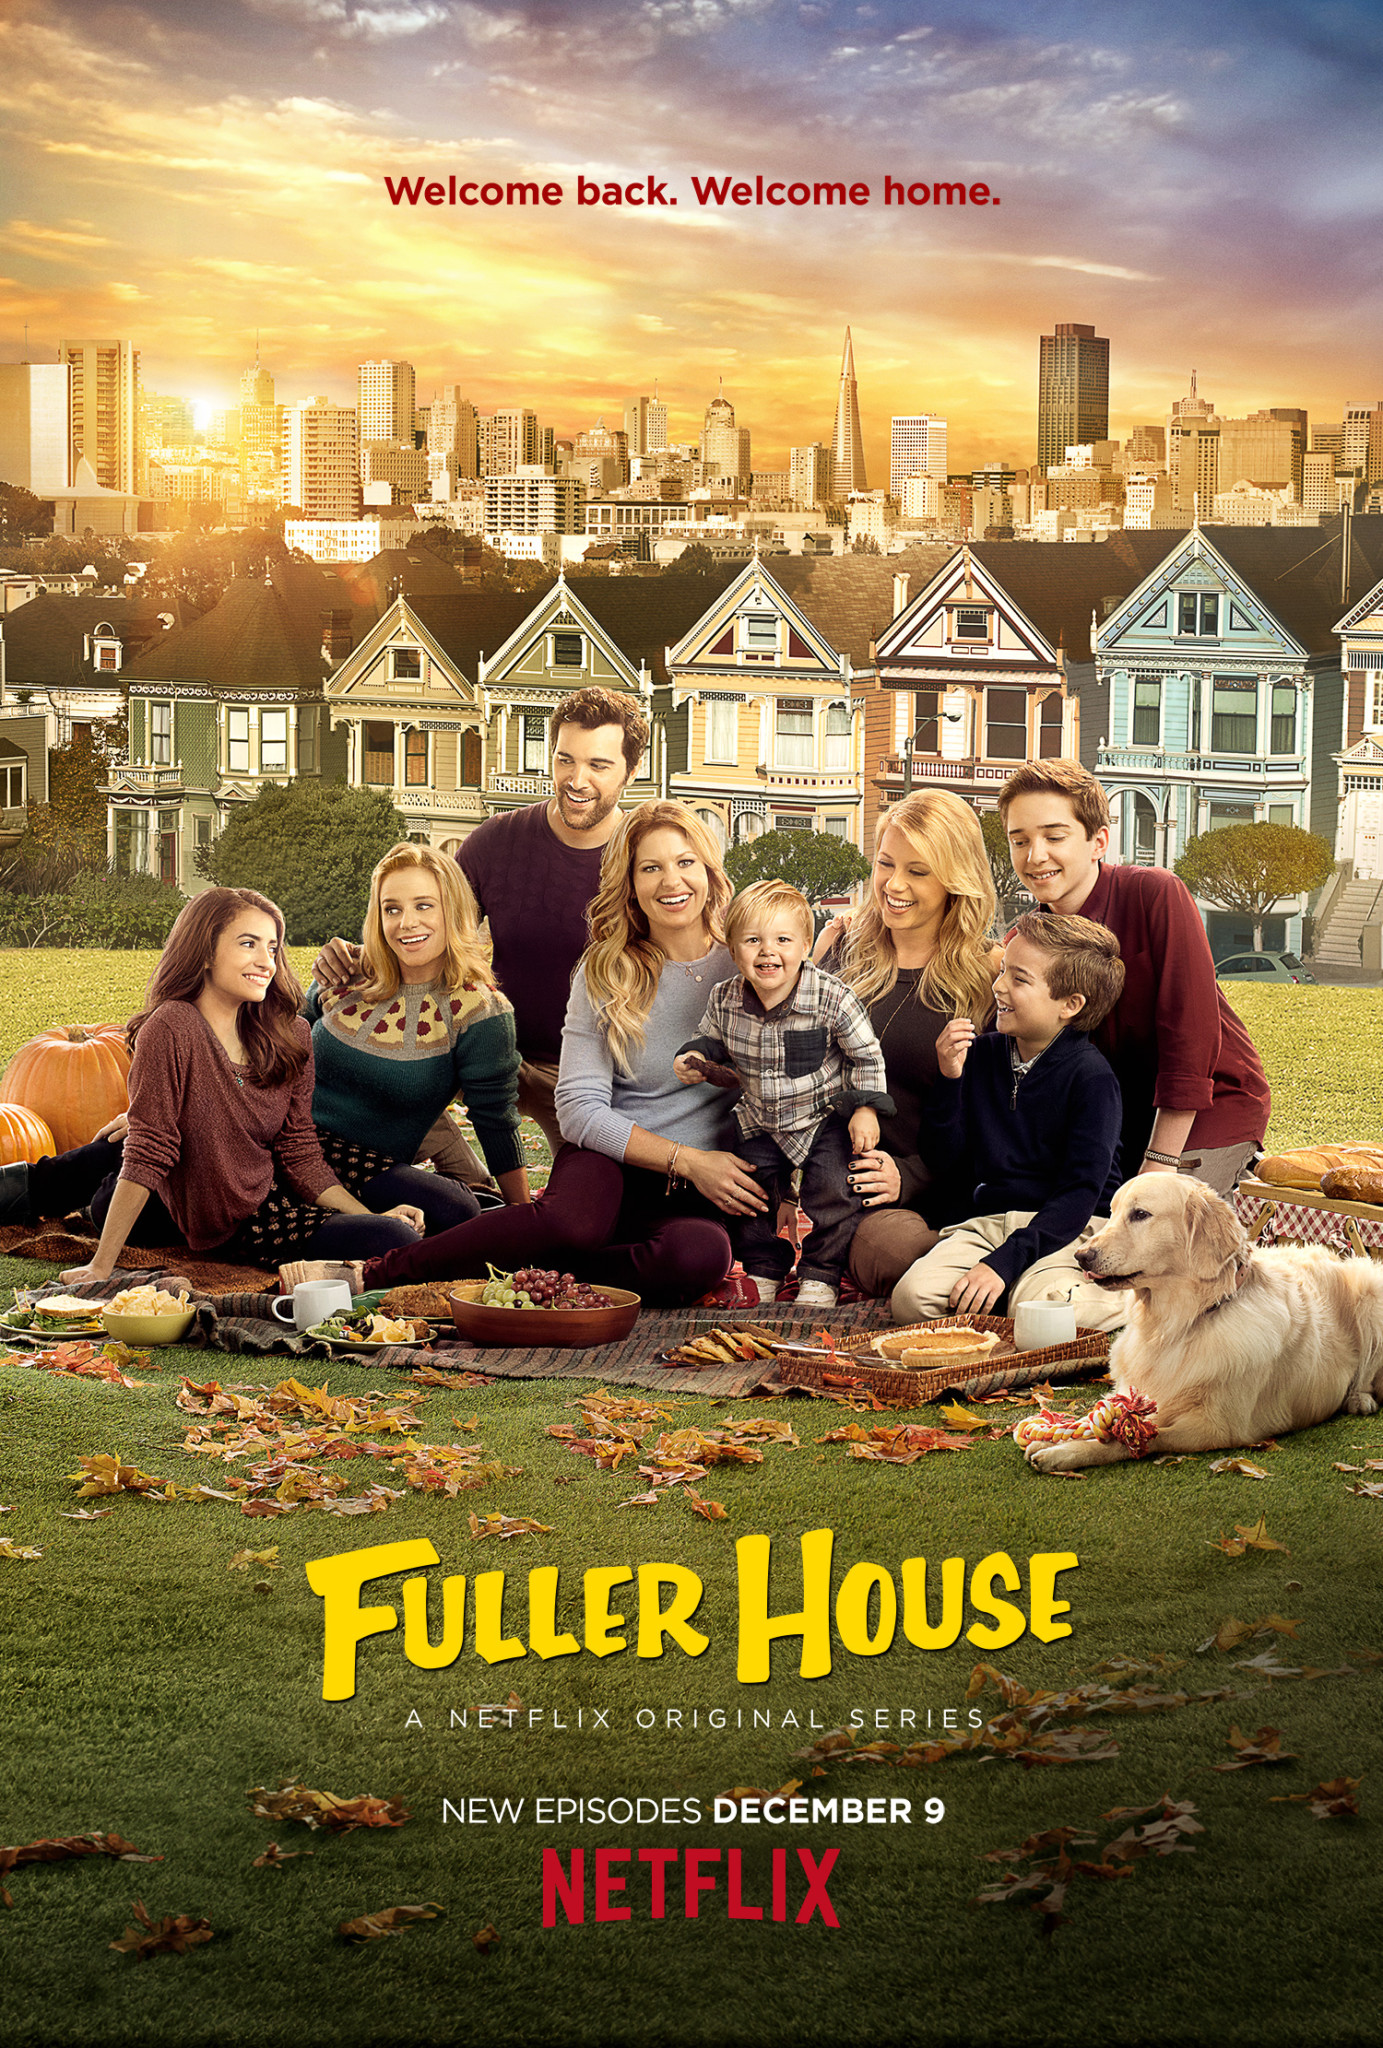 Key Art for Season 2 of Fuller House